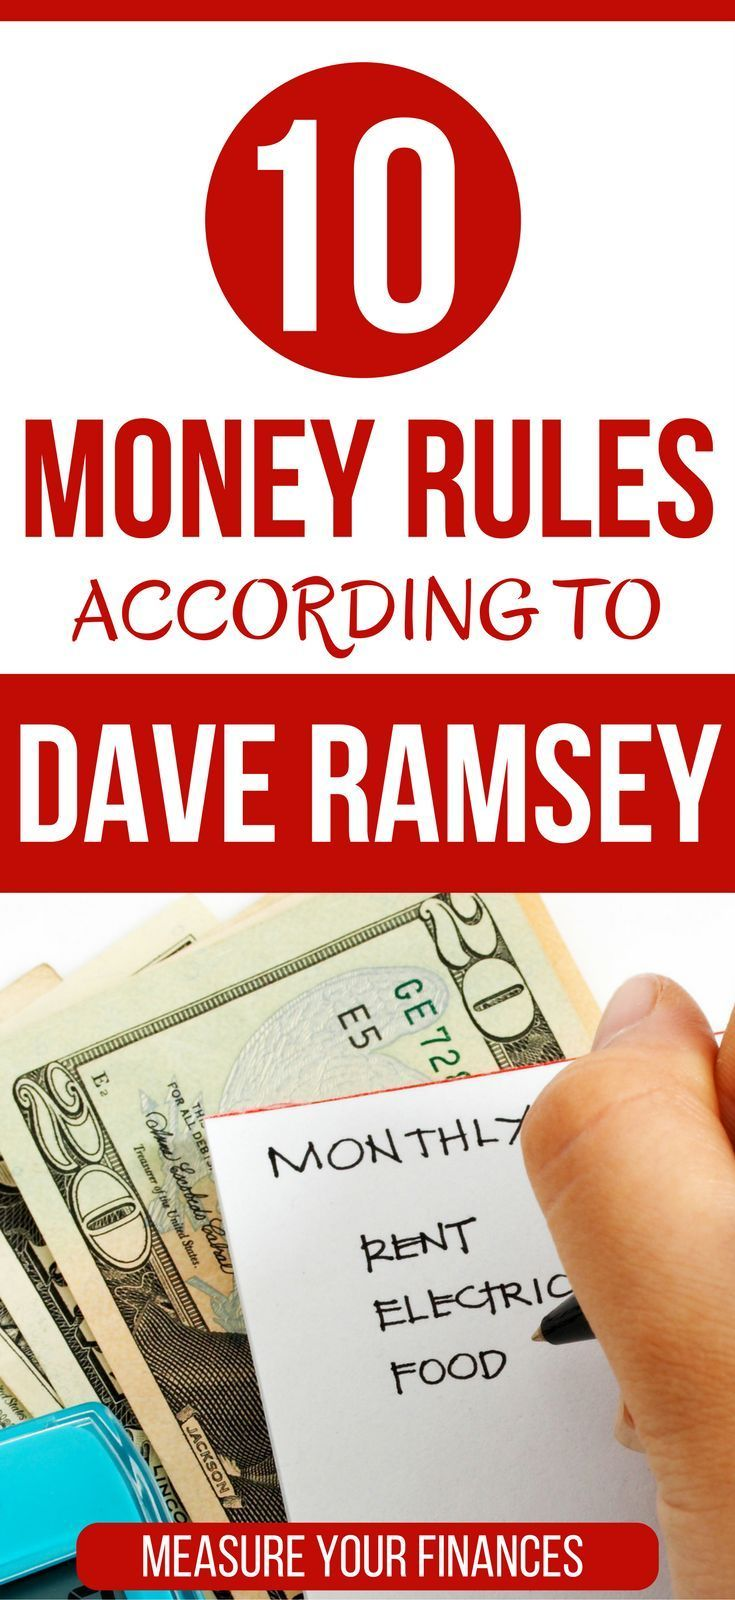 10 Simple money rules you should follow according to Dave Ramsey budgeting for beginners | getting started budgeting | investing for beginners | saving for retirement | asset allocation | buying a home first time #moneymanagement #personalfinance #money via @https://www.pinterest.com/thewaystowealth/